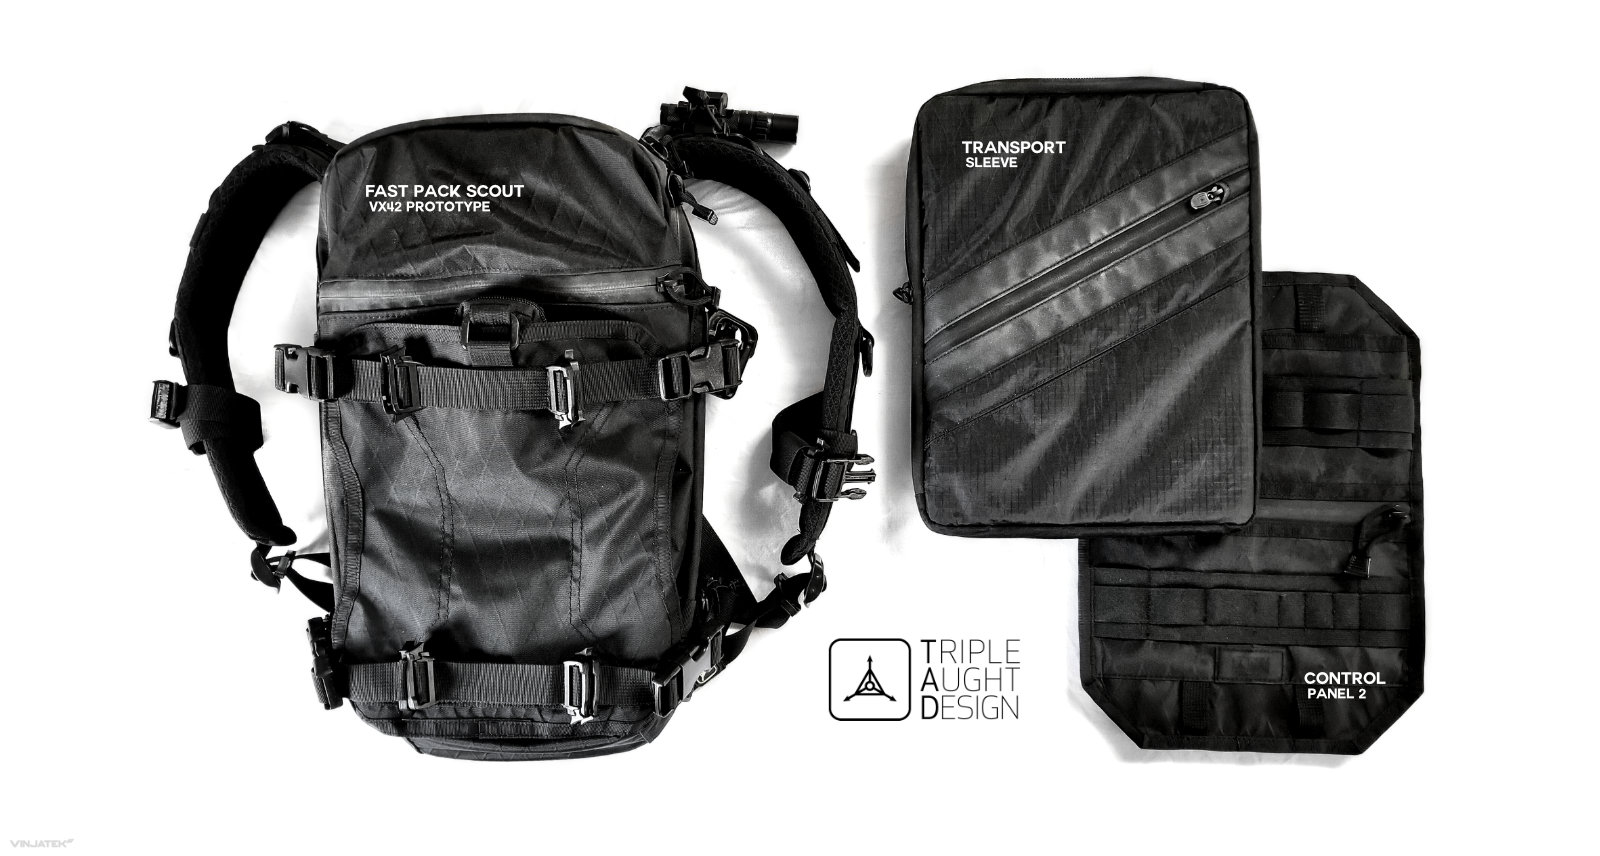 Triple Aught Design FAST Pack Scout VX42 Prototype, Control Panel 2 and Transport Sleeve /// Vinjatek